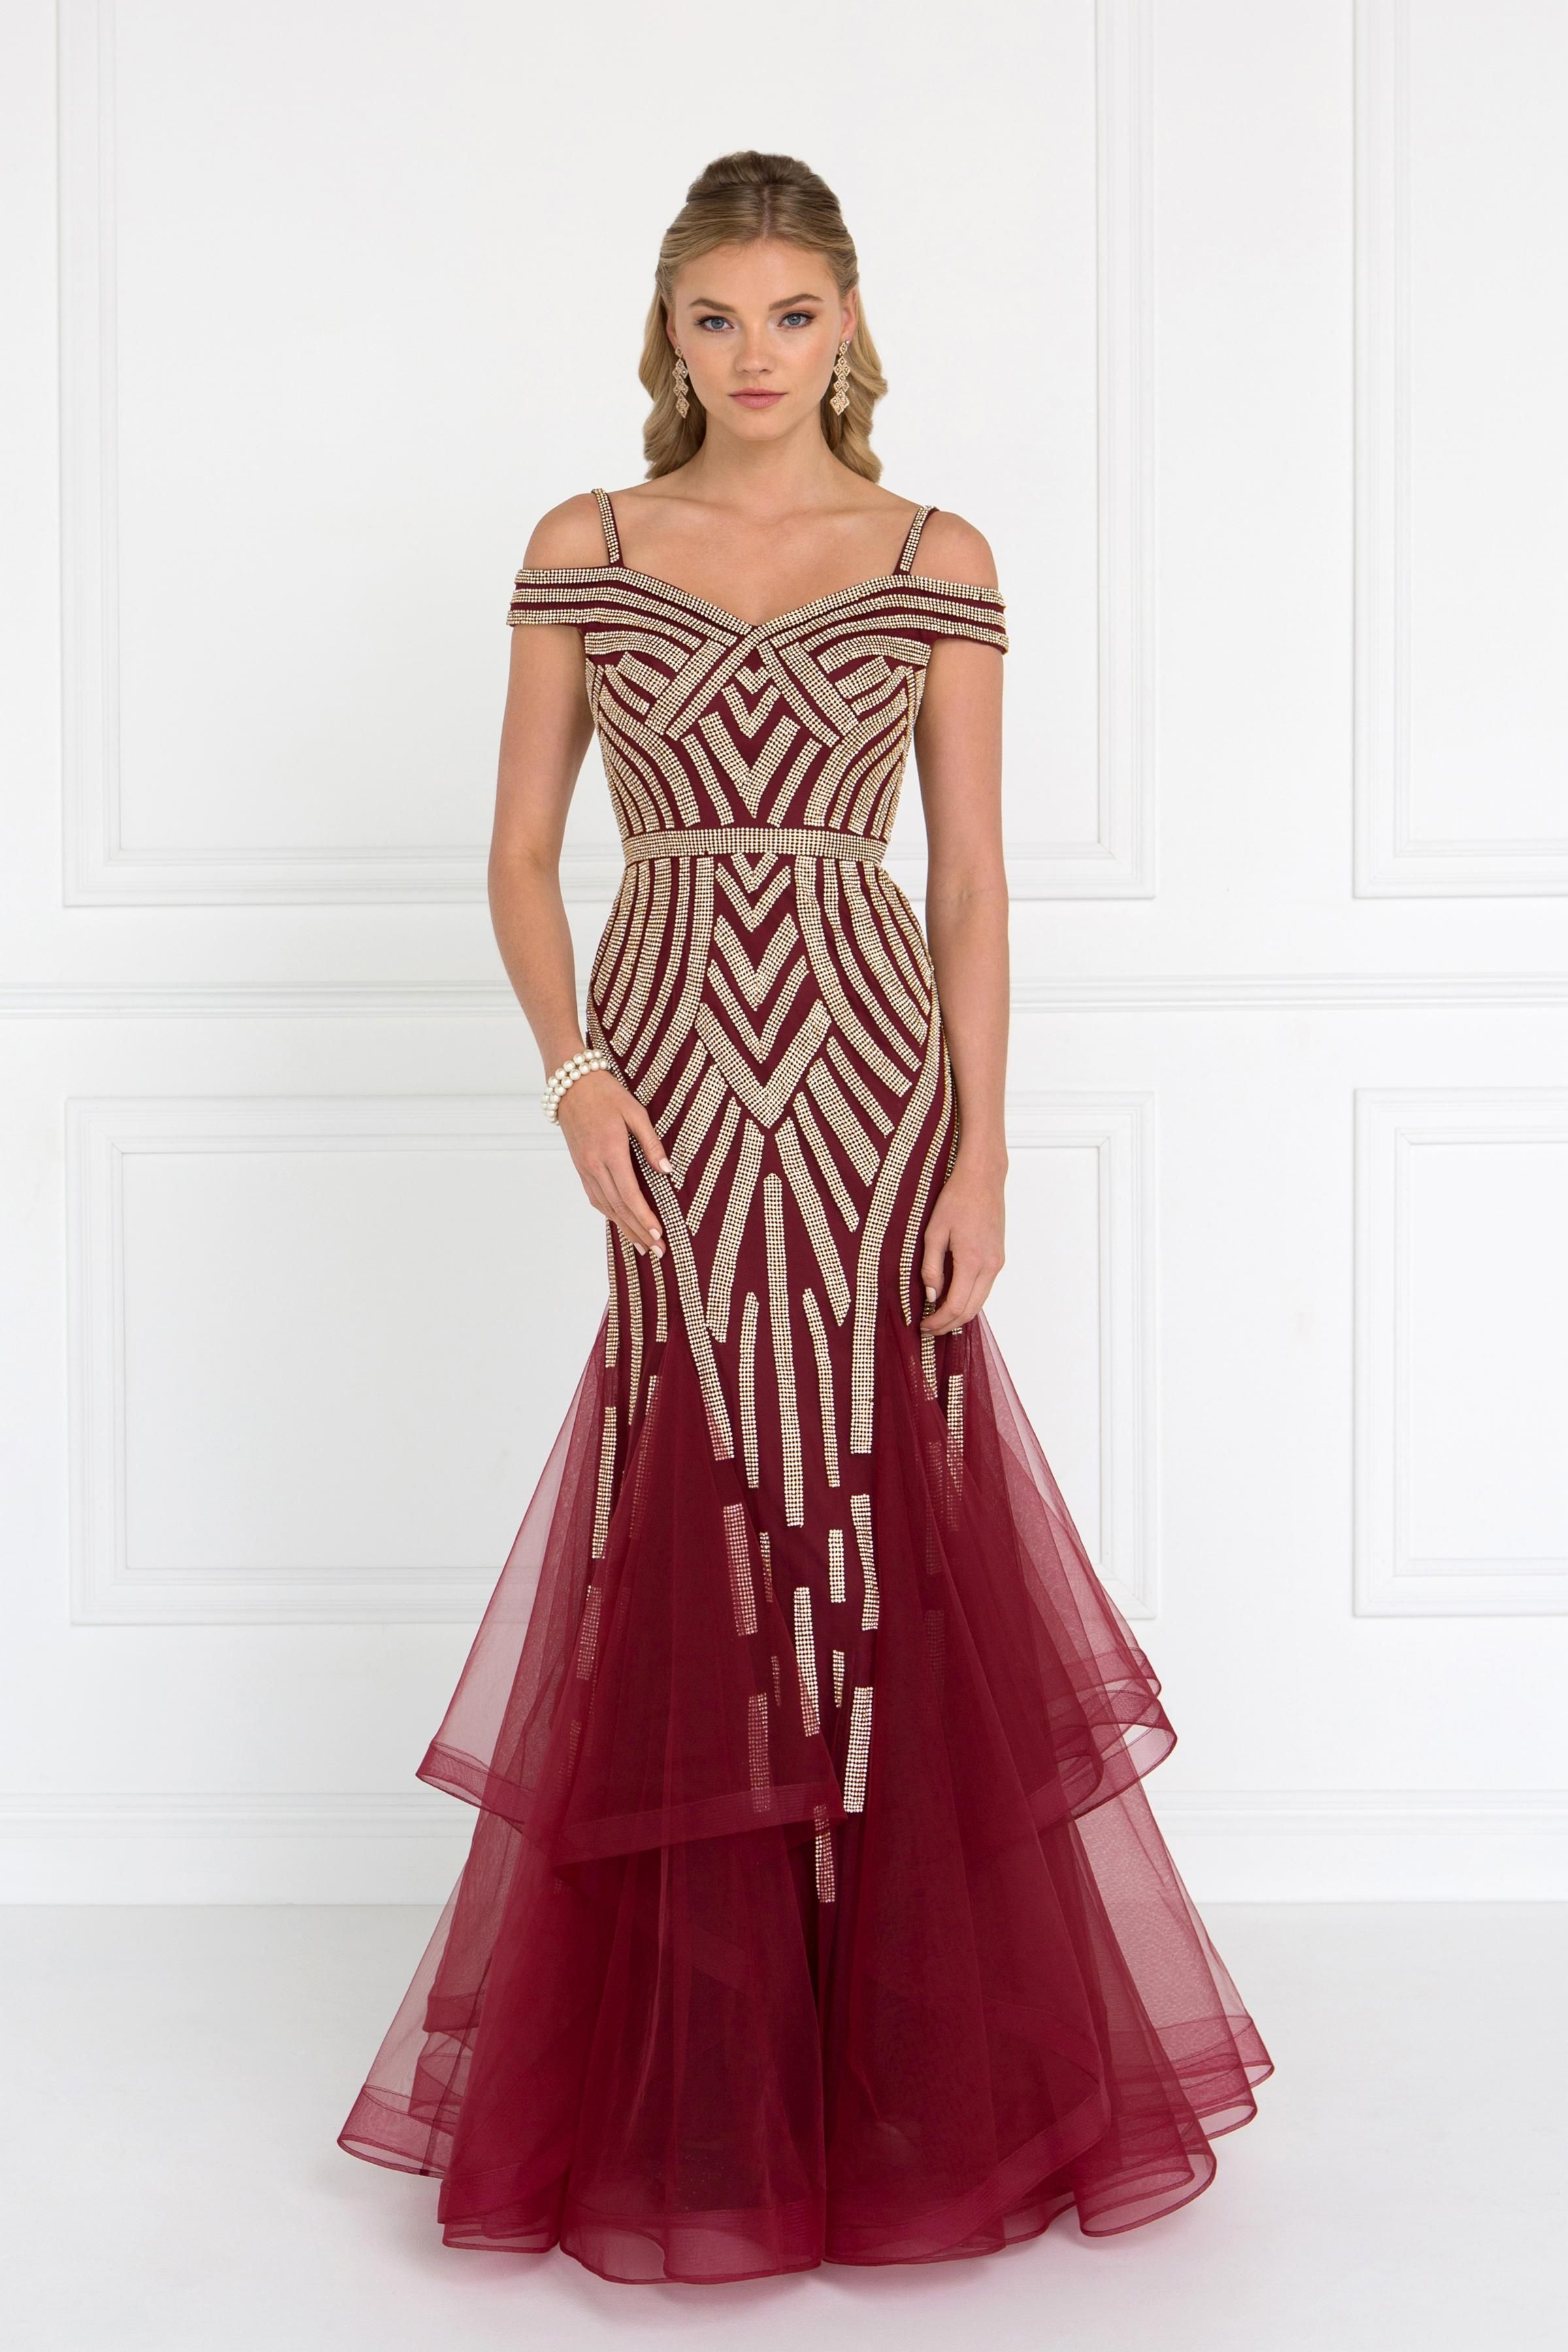 39f43d172c1b5 Mesh Off Shoulder Trumpet Long Dress with Rhinestones Fabric: Mesh Length:  Hollow to Hem 59 Neckline: Off The Shoulder Sleeve: Straps Back: Open, ...